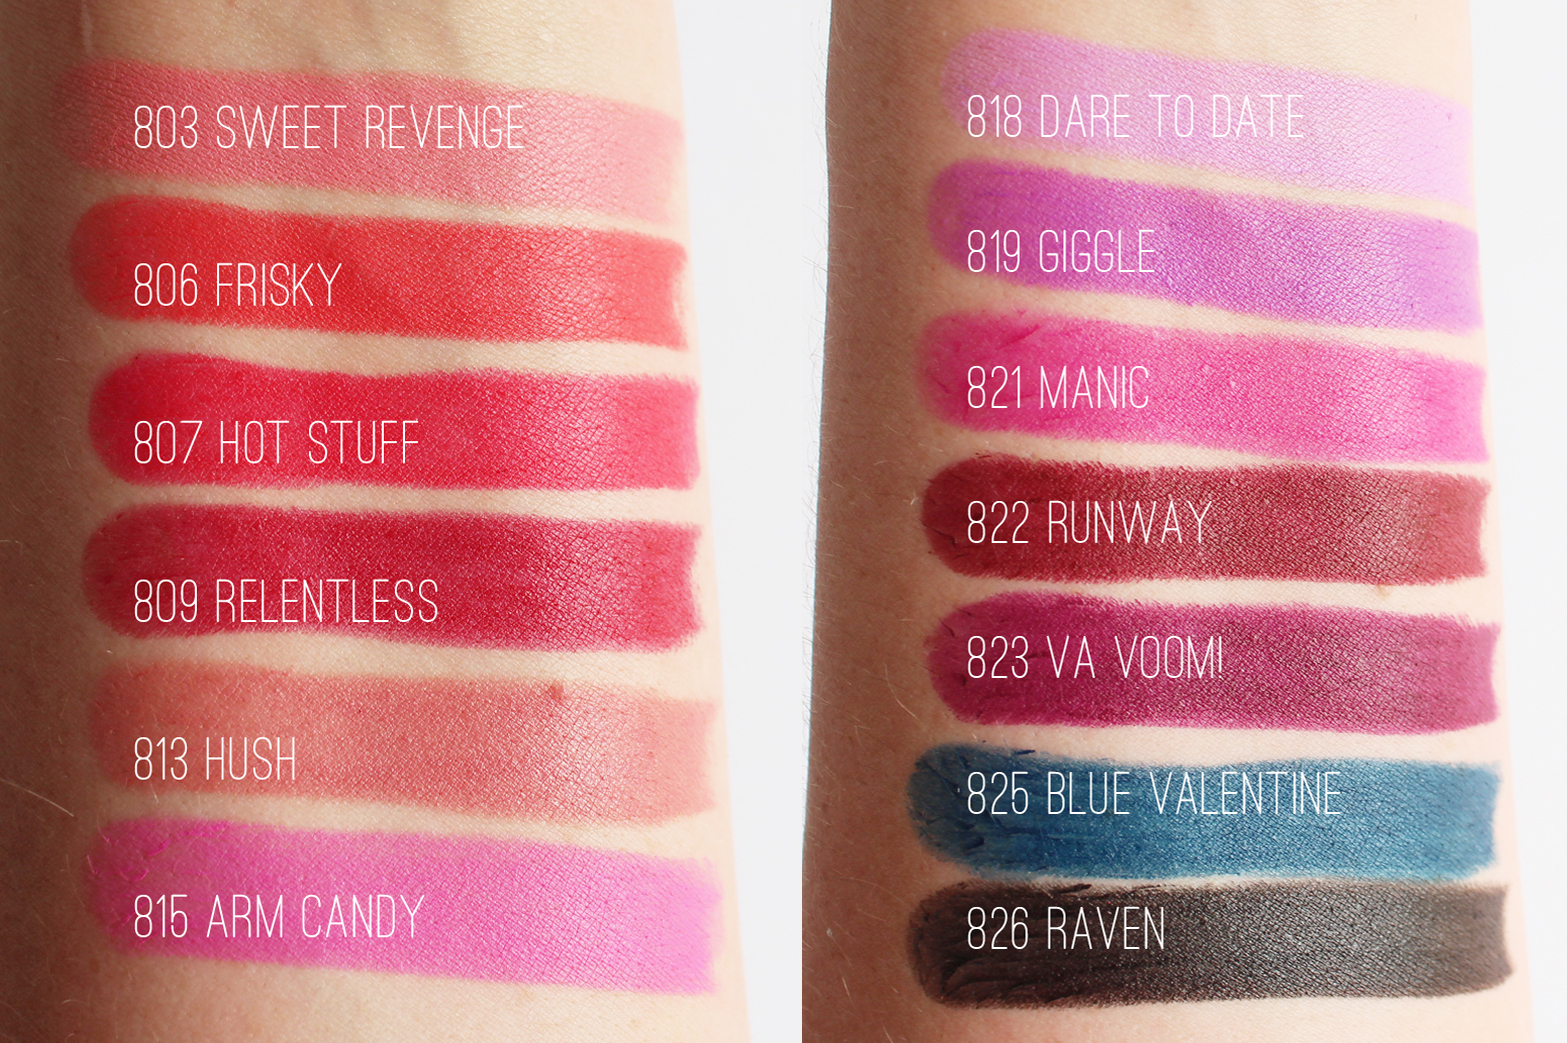 L.A. GIRL | Matte Flat Velvet Lipsticks - 13 Shades - Review + Swatches - CassandraMyee